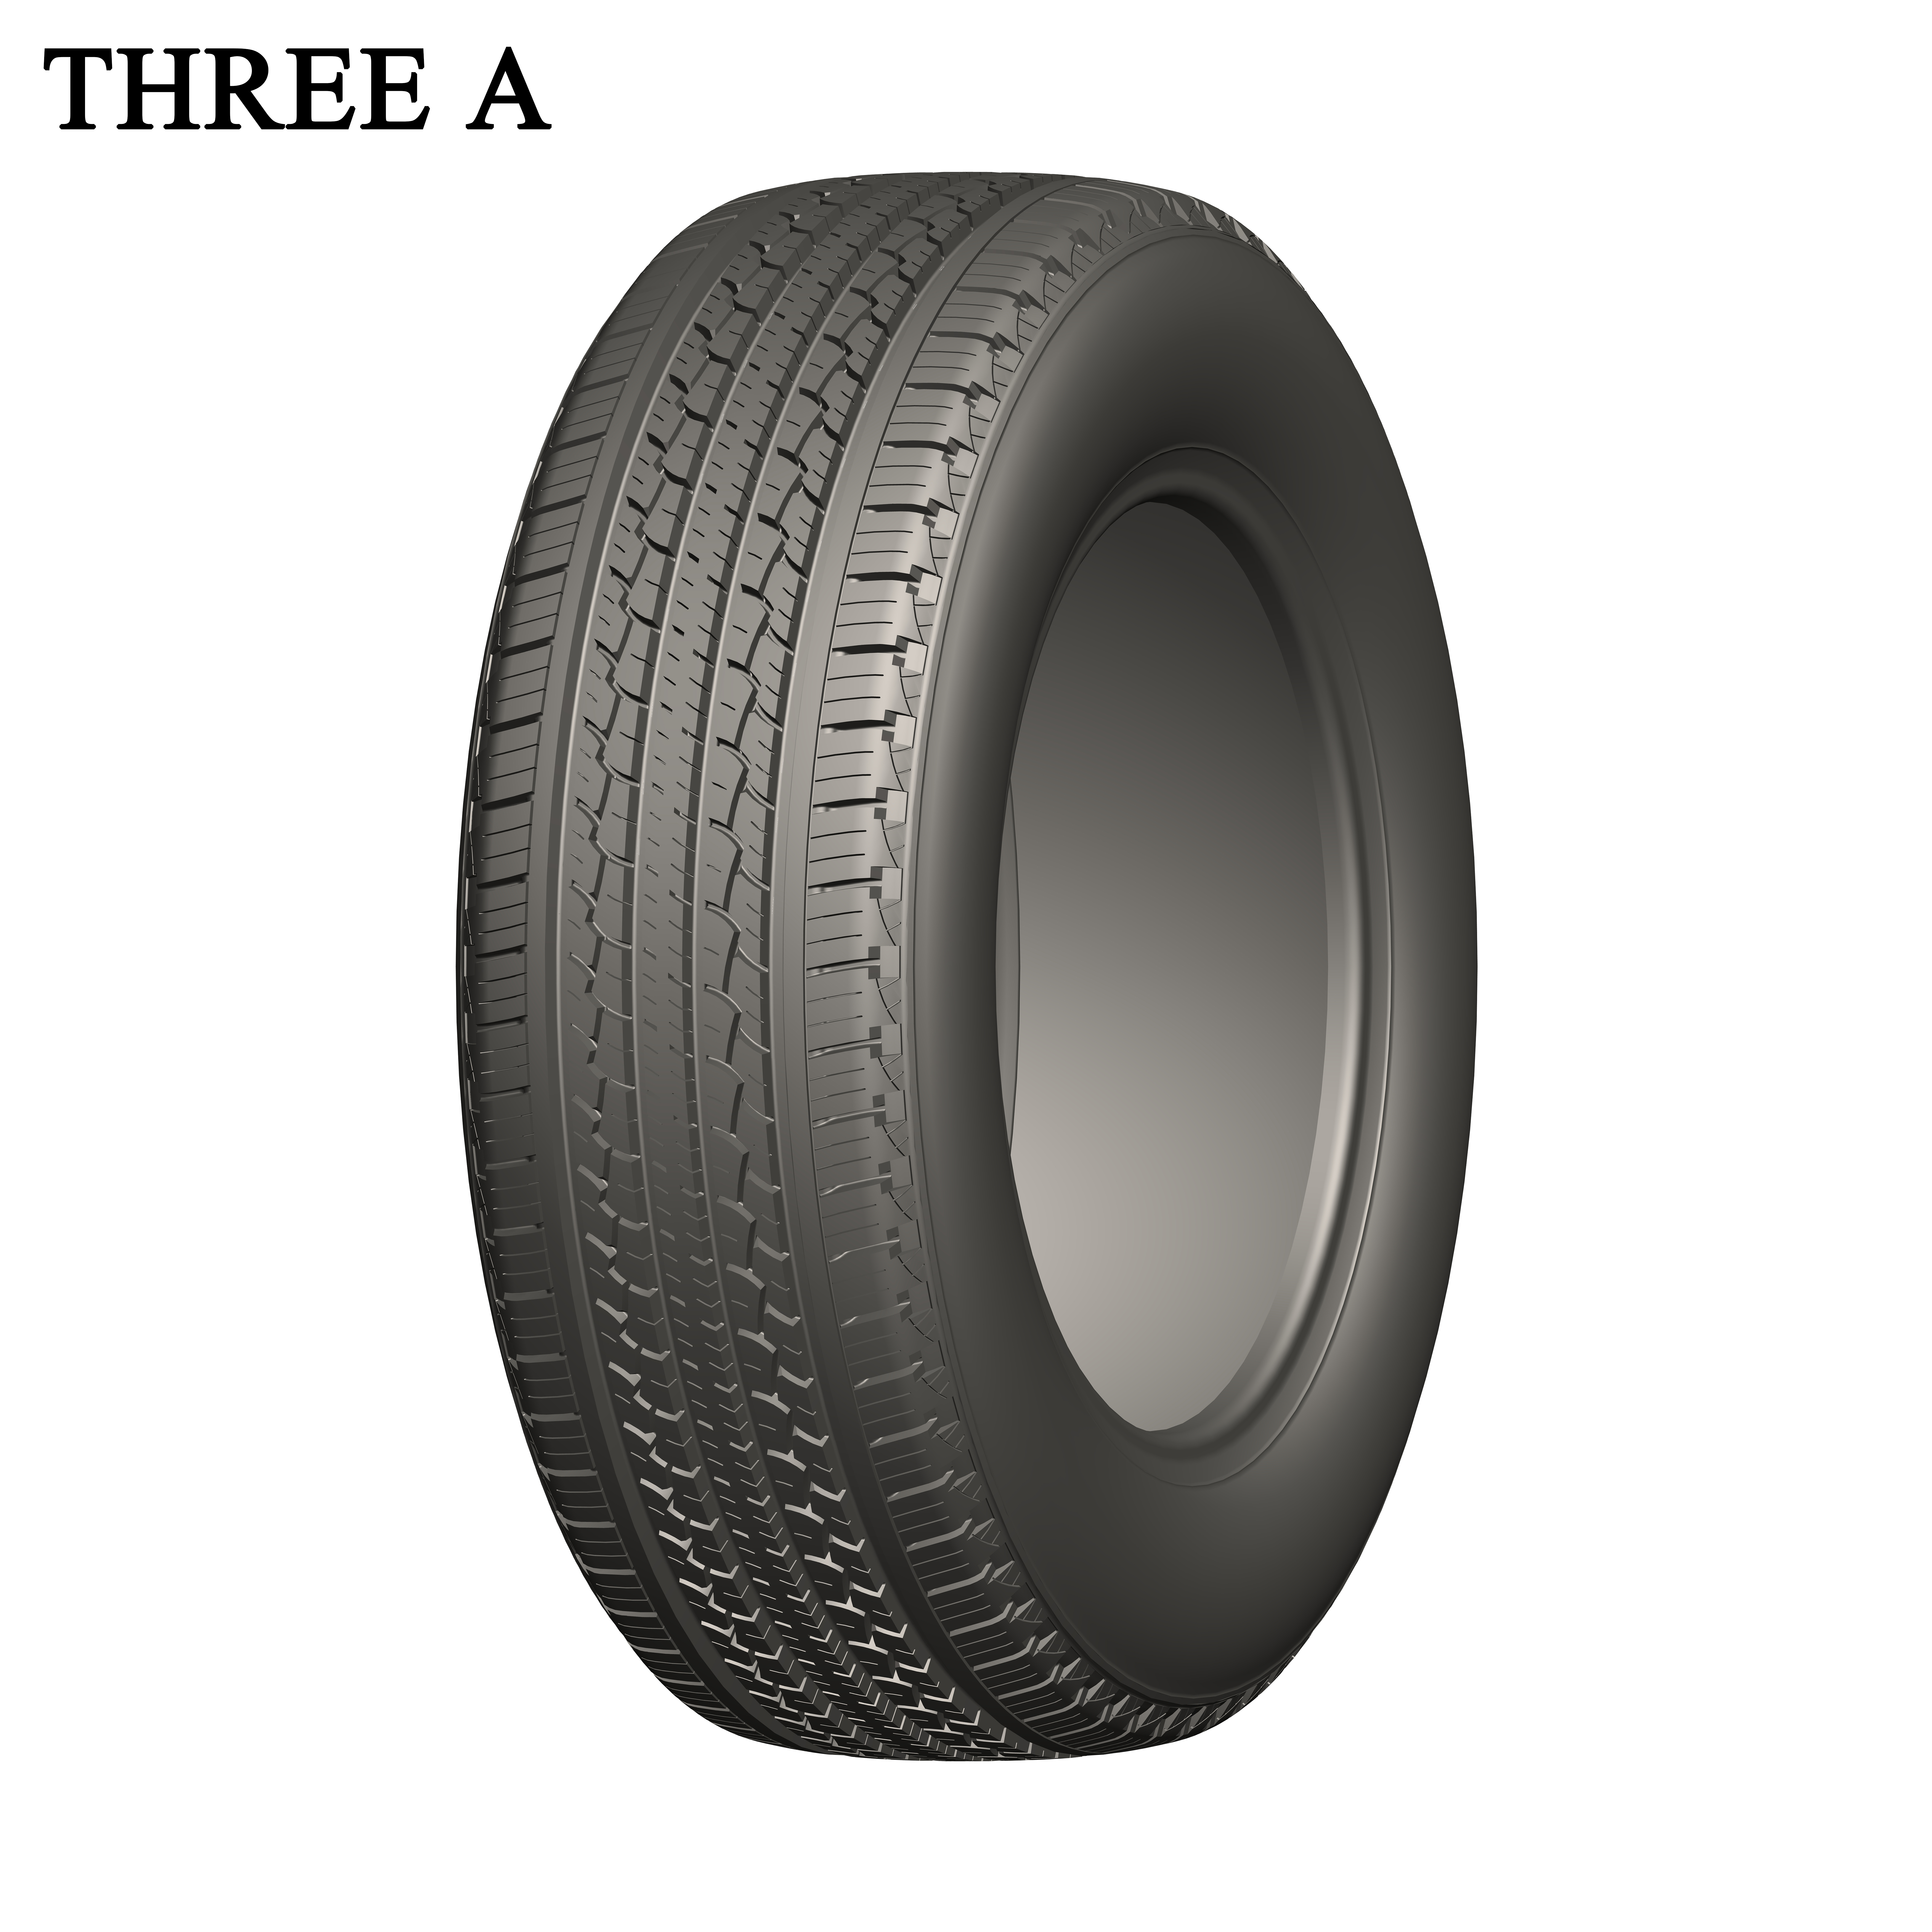 Good Sd Performance Tires For Cars From Factory Tire Spikes 225 60r17 60 17 Product On Alibaba